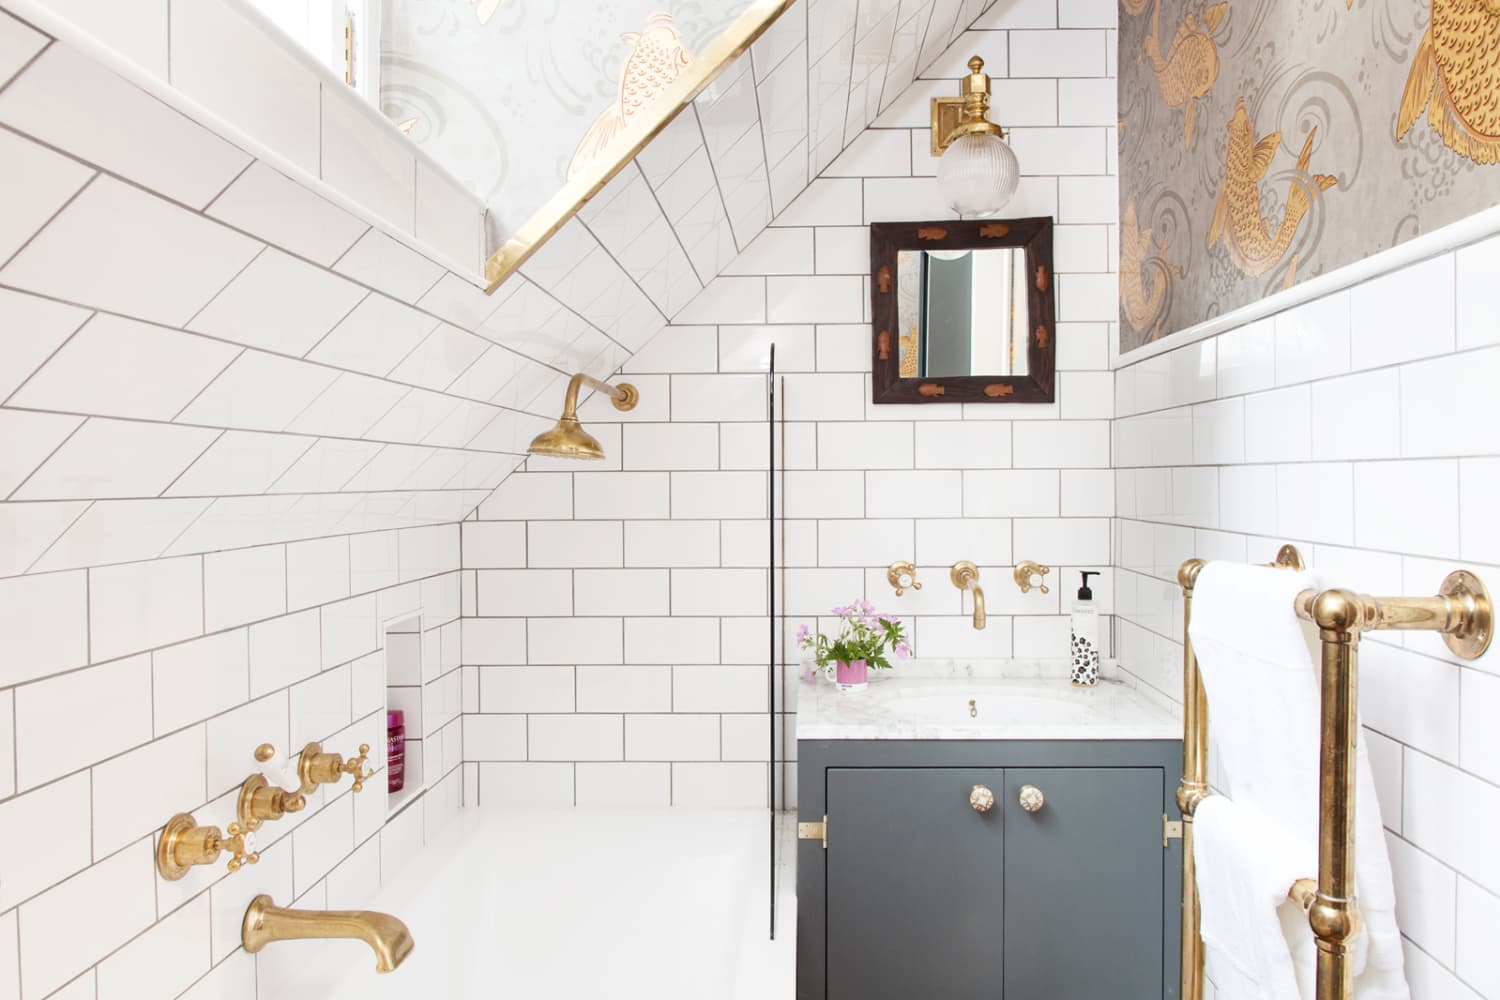 Penny Tiles Badkamer : The dramatic all in way to make a major room statement apartment